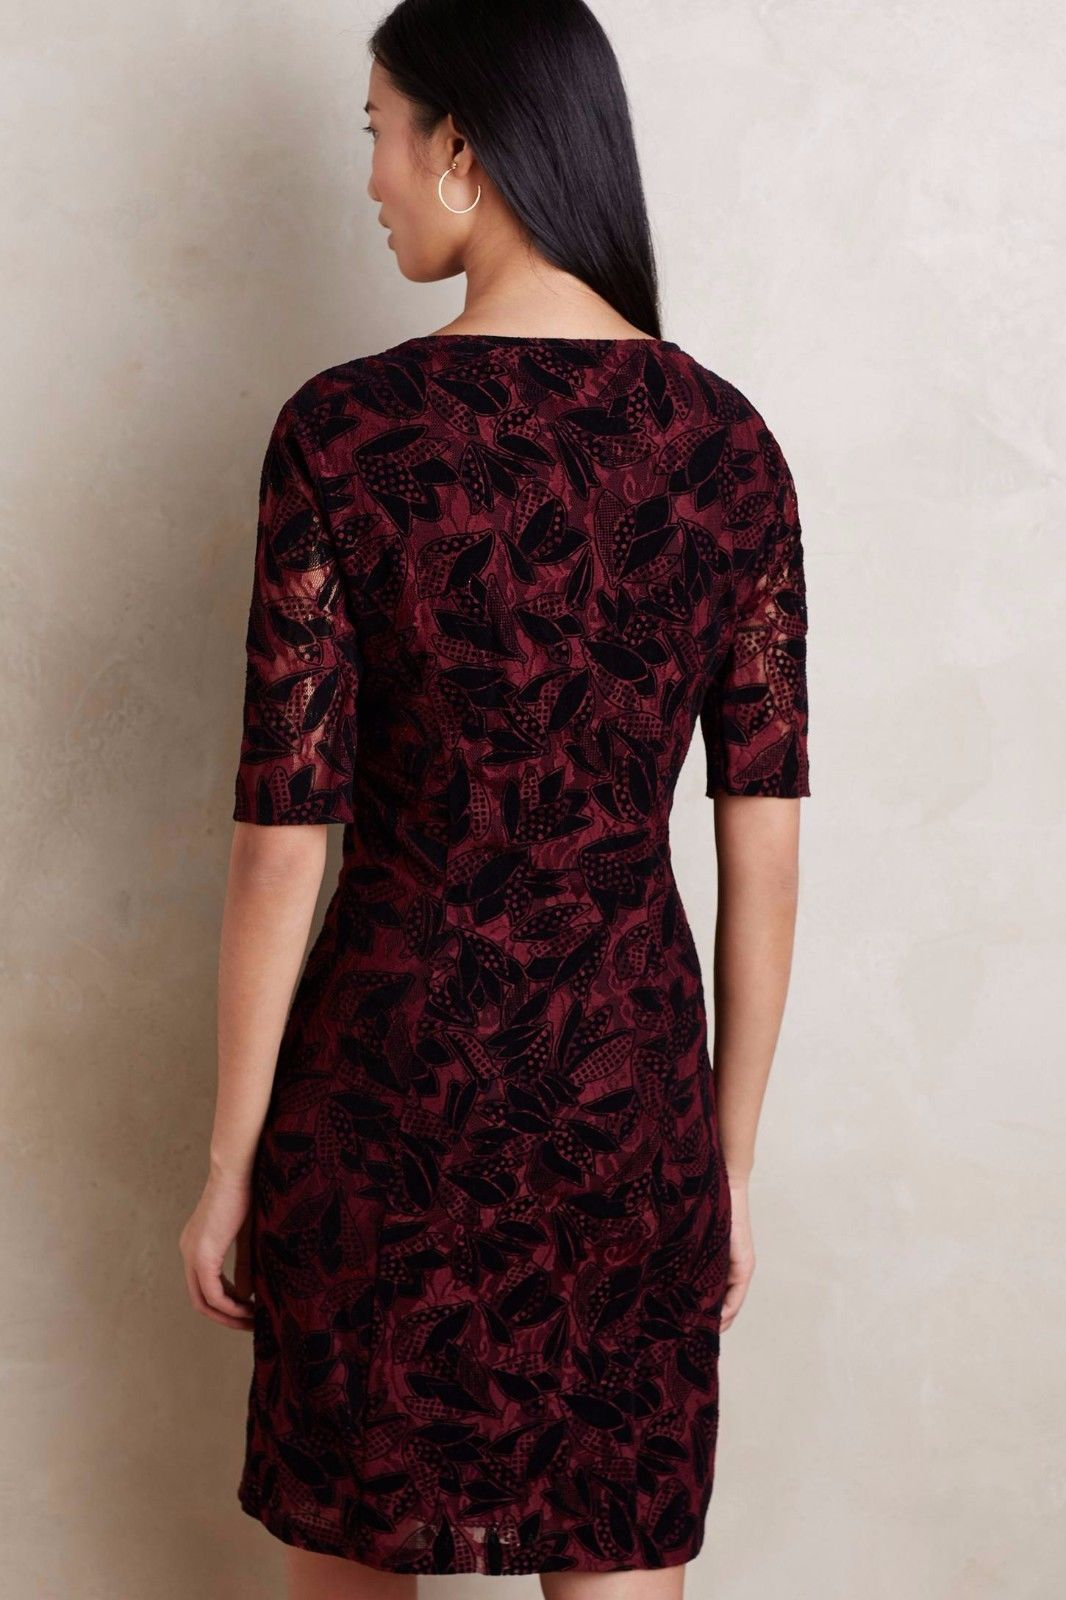 NWT ANTHROPOLOGIE ELORN WINE DRESS by MAEVE 4